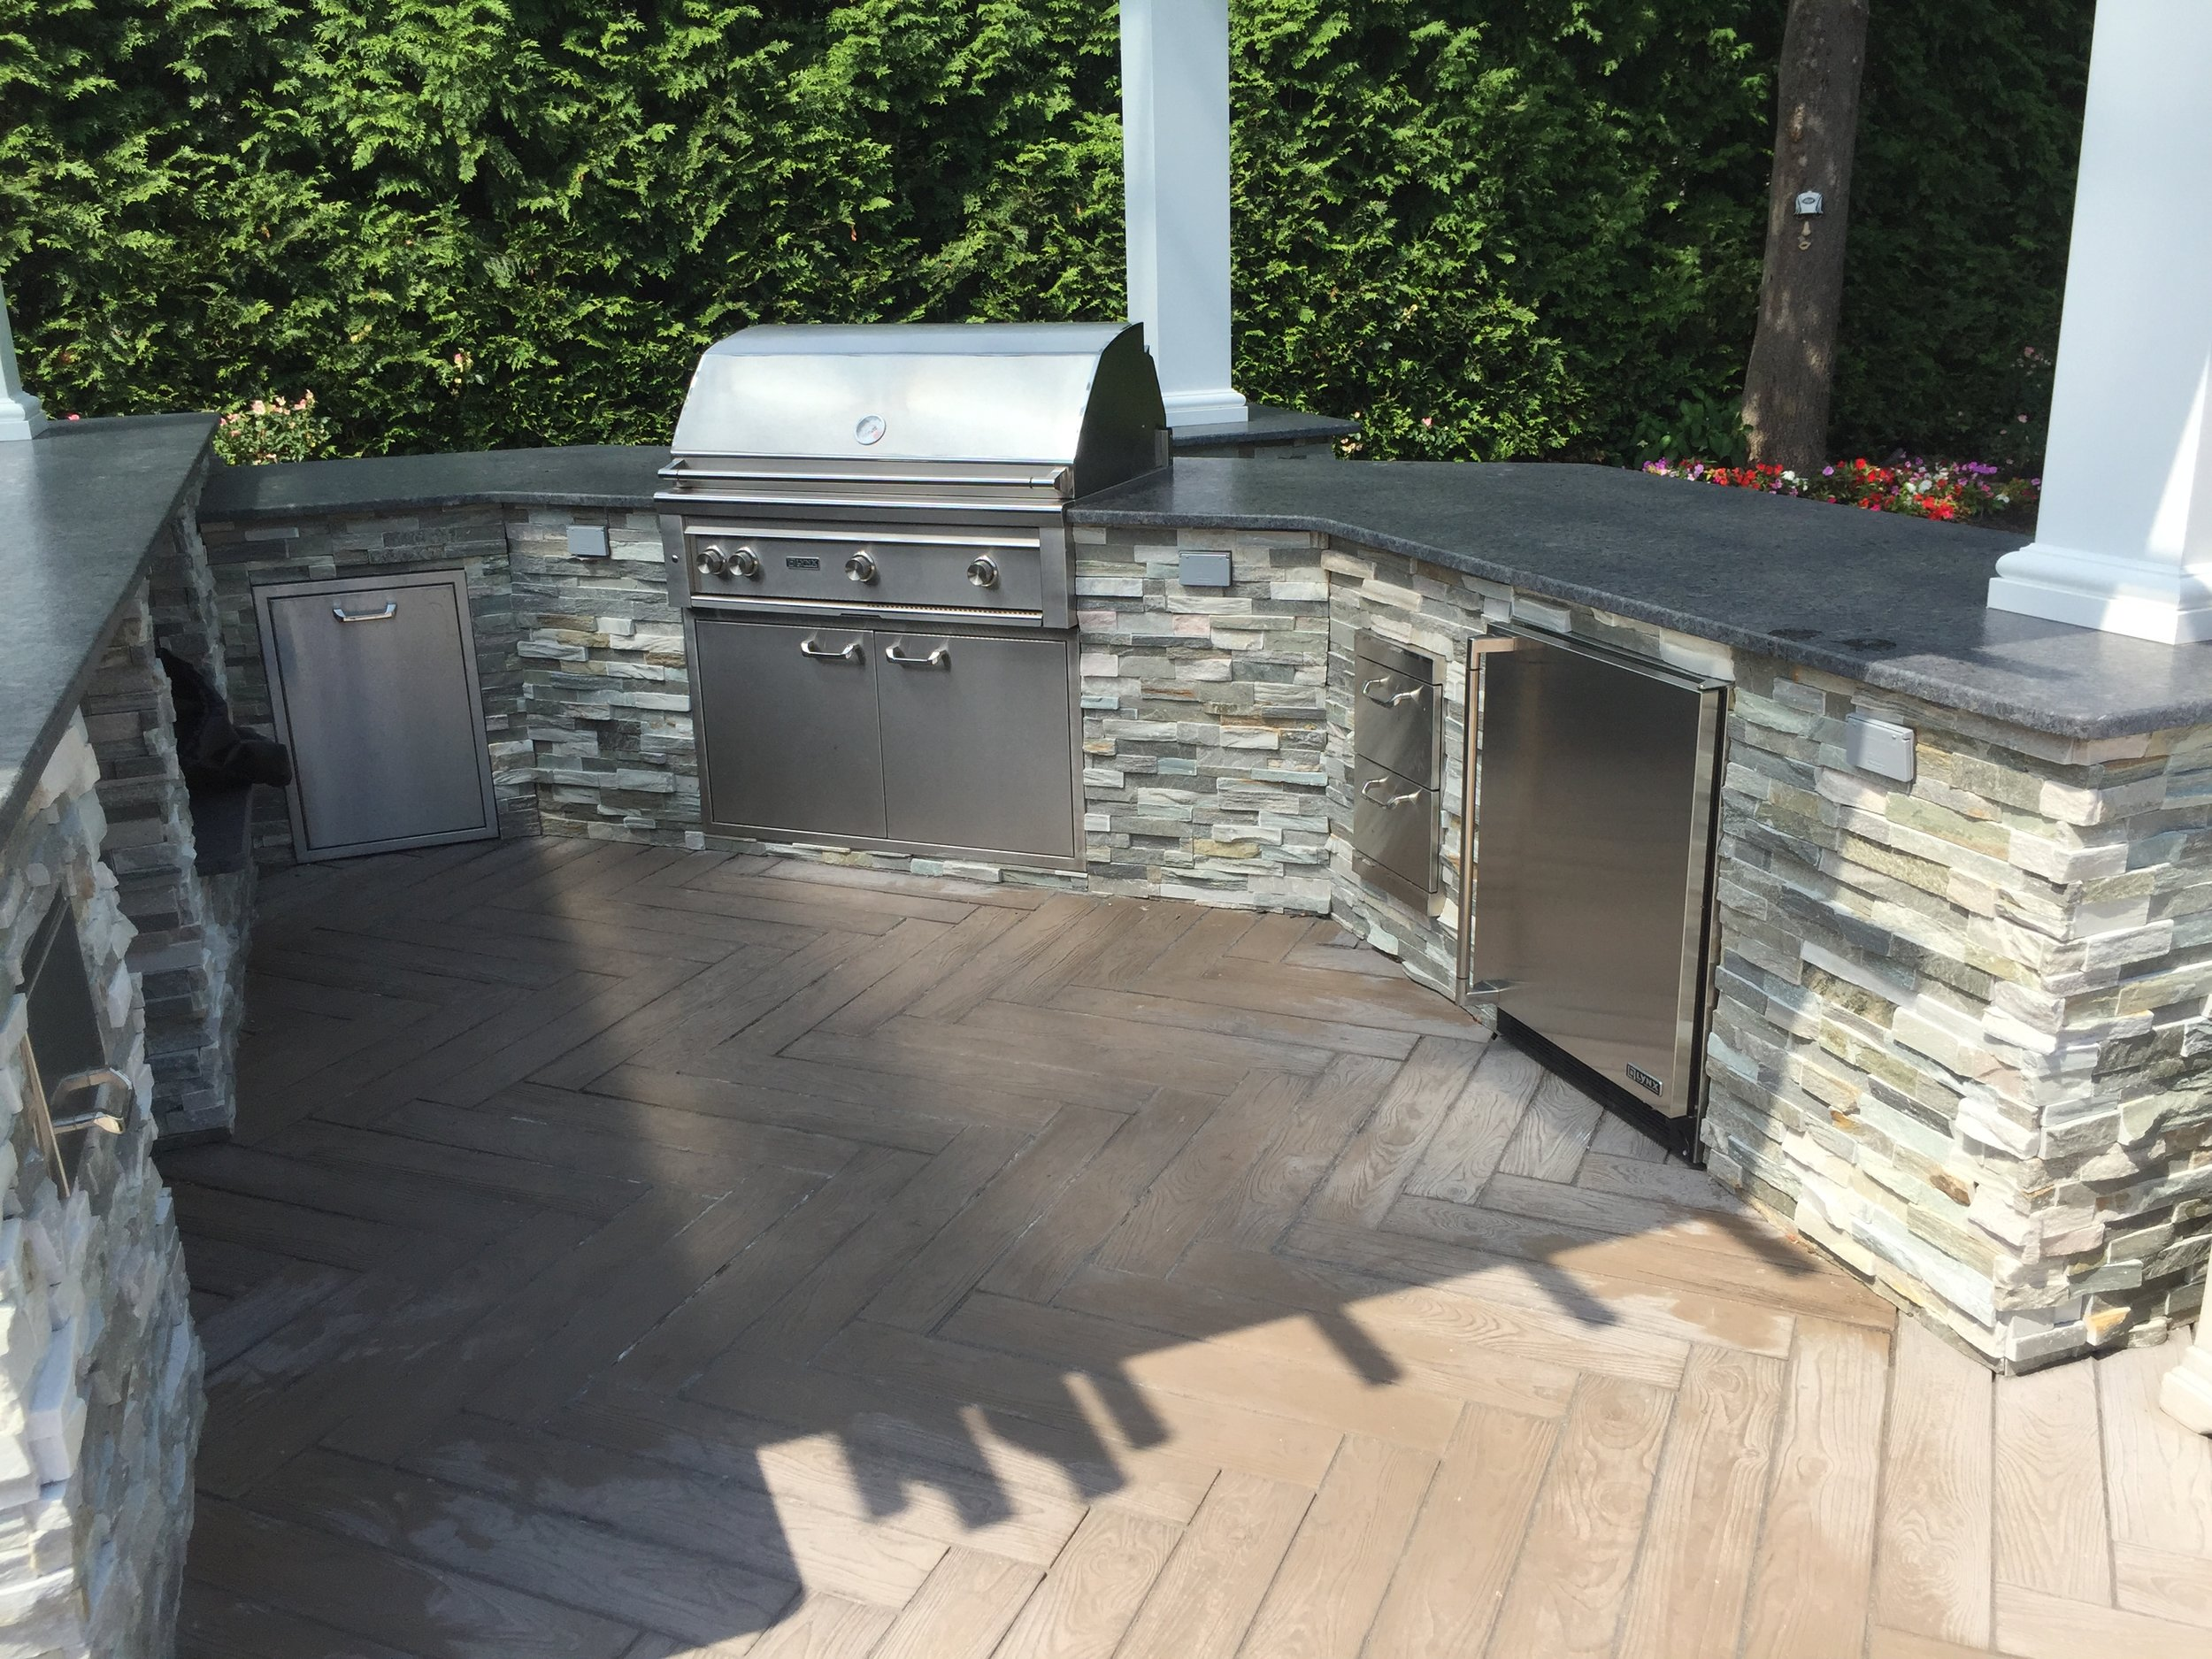 Professional outdoor kitchen design company in Long Island, NY